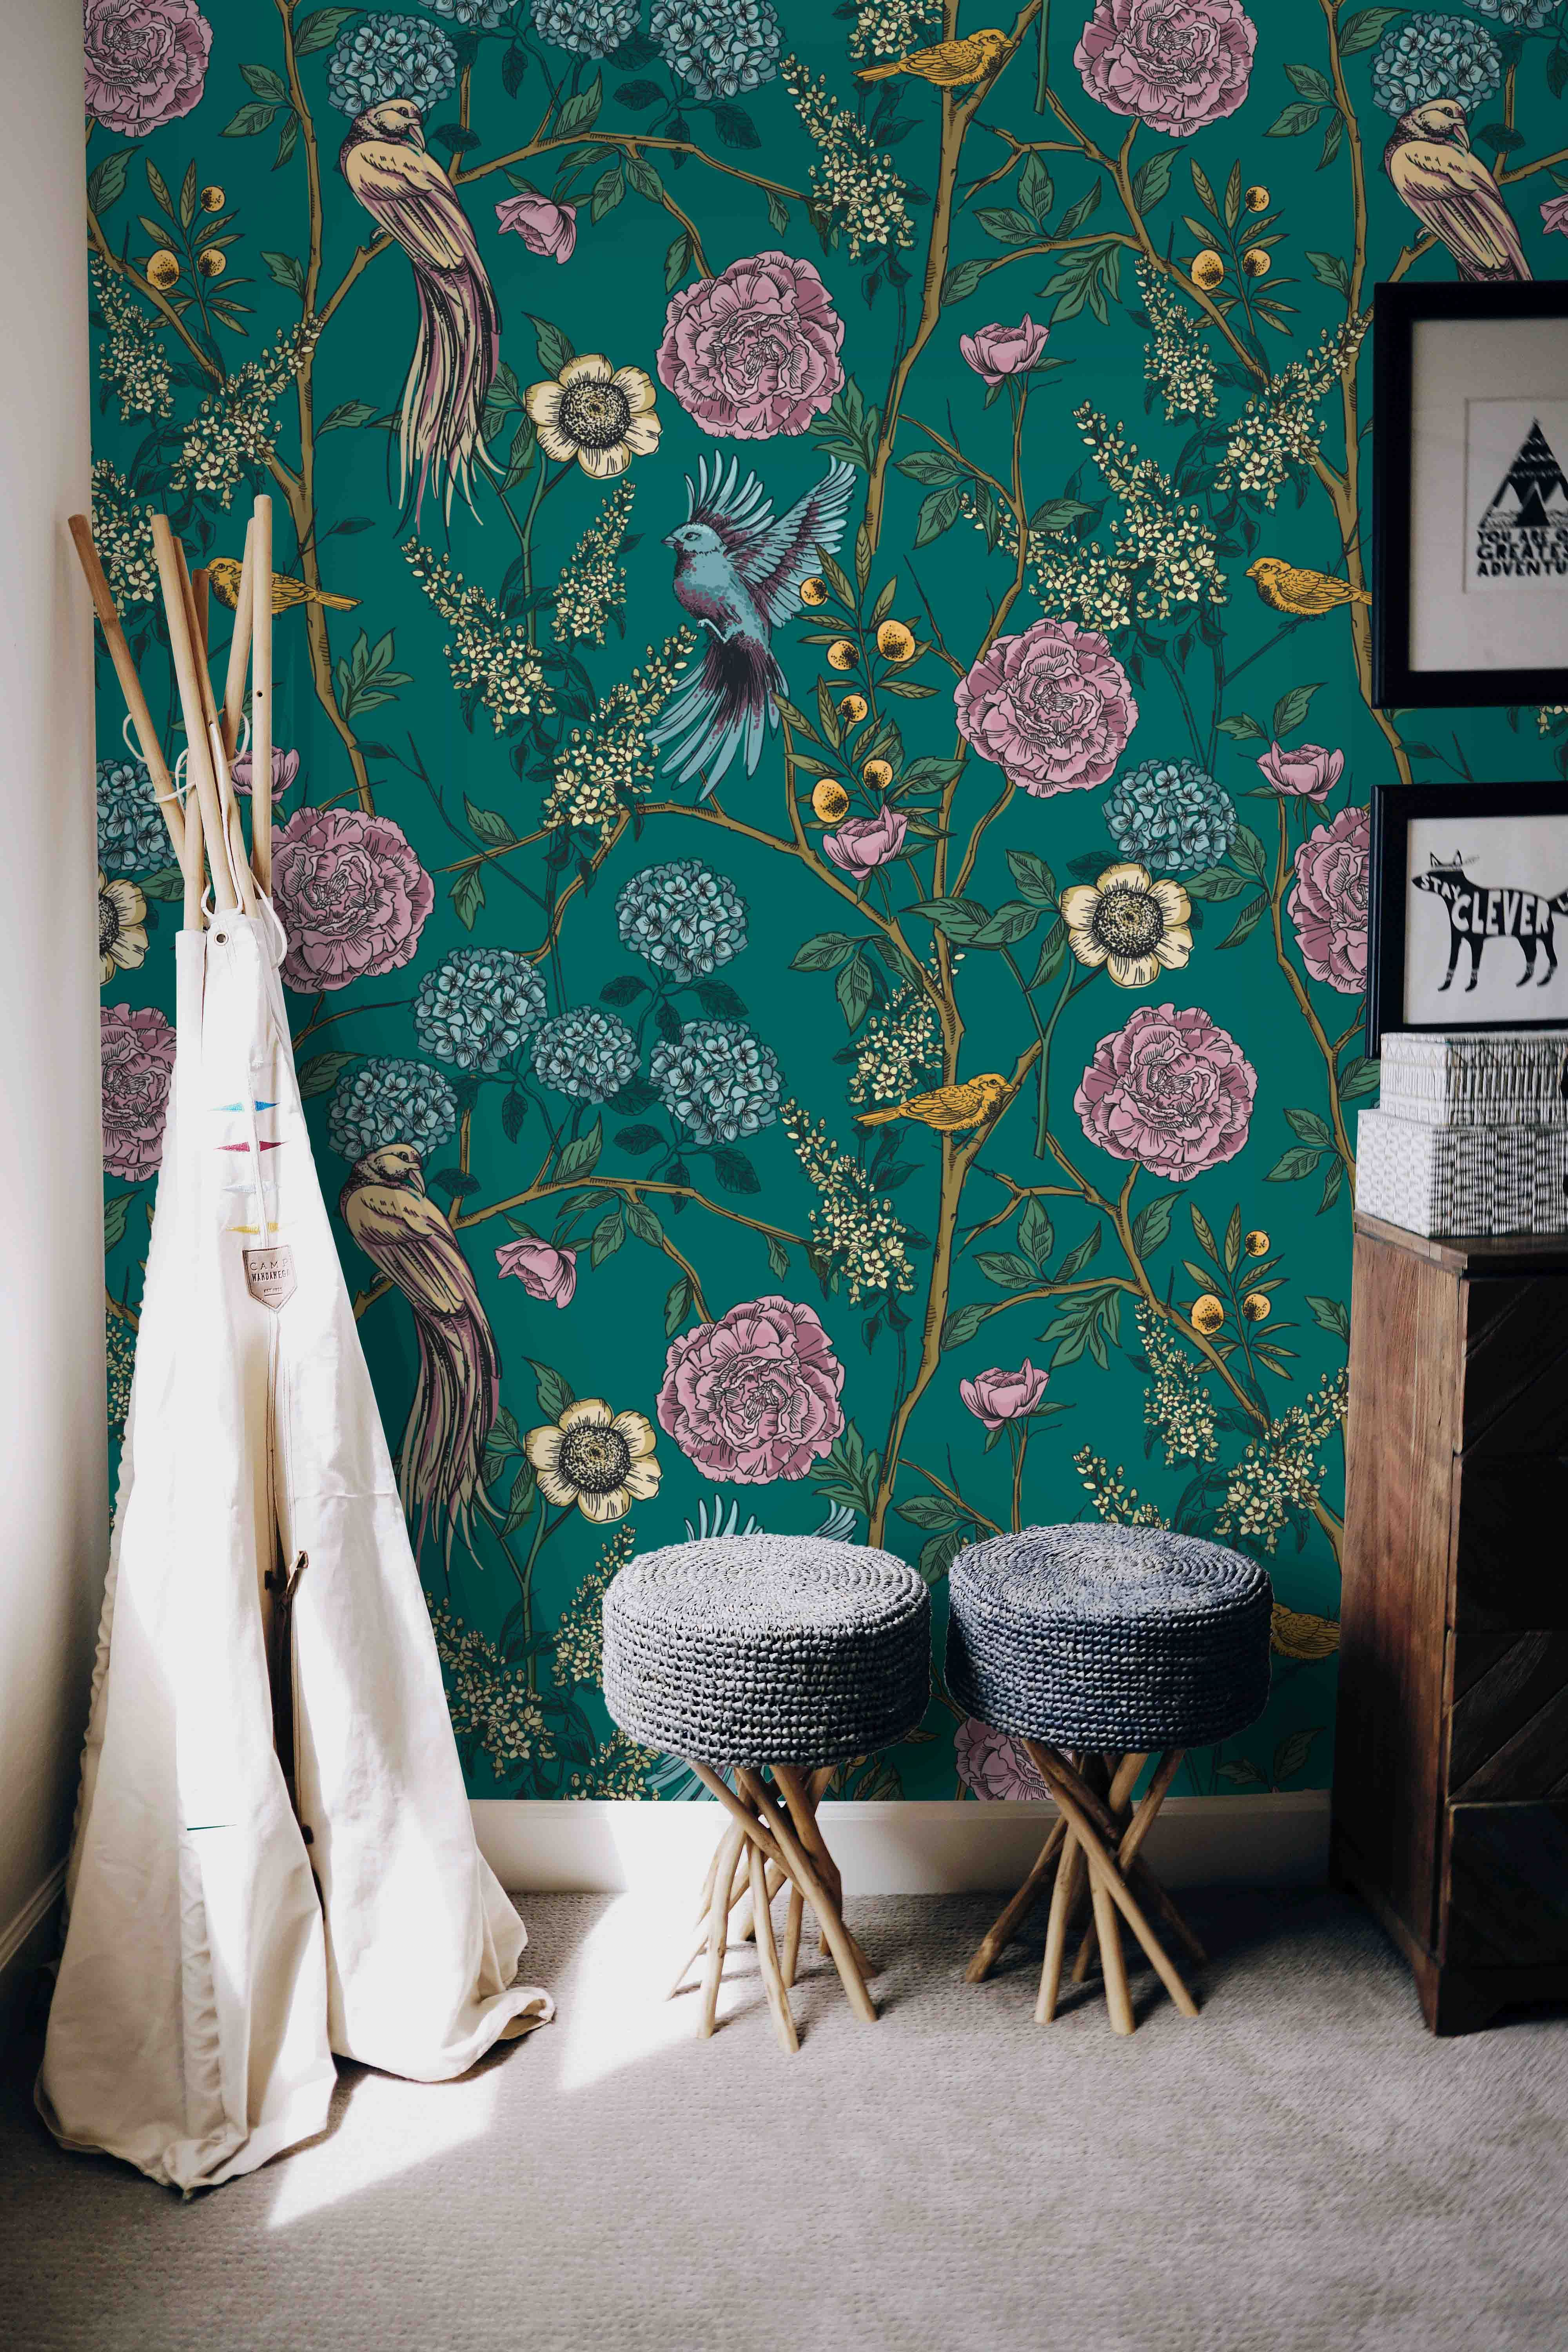 Floral Garden With Birds Wall Mural Removable Self Adhesive Etsy Peel And Stick Wallpaper Bird Wallpaper Wall Murals